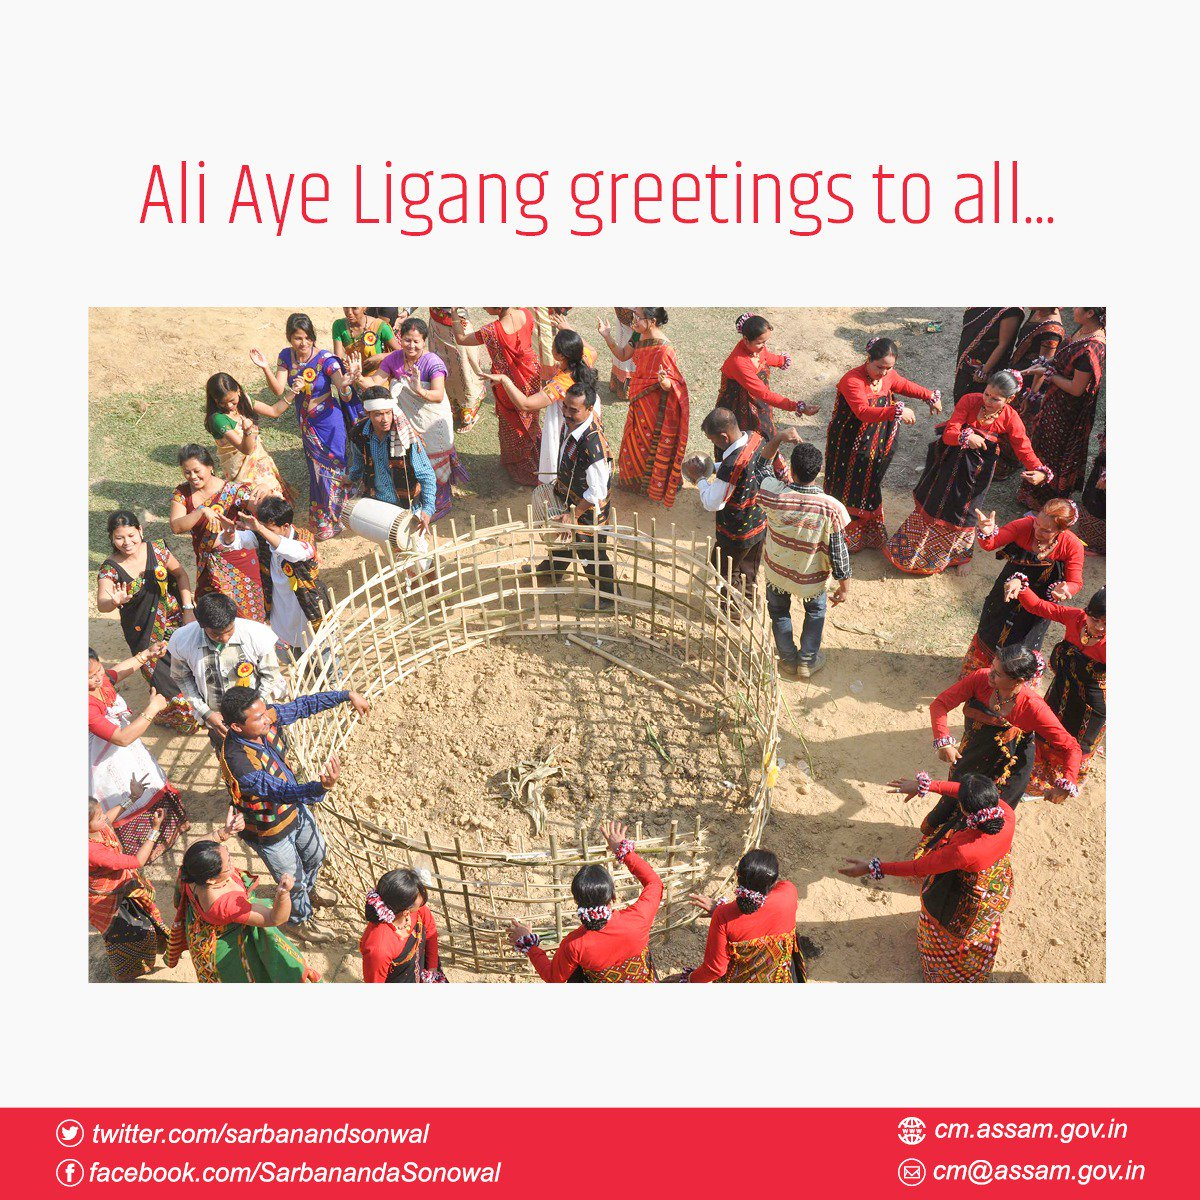 Ali Aye Ligang greetings to my brothers and sisters of the Mising community. May the colourful rhythms of the Gumrag dance usher in prosperity, happiness and progress.